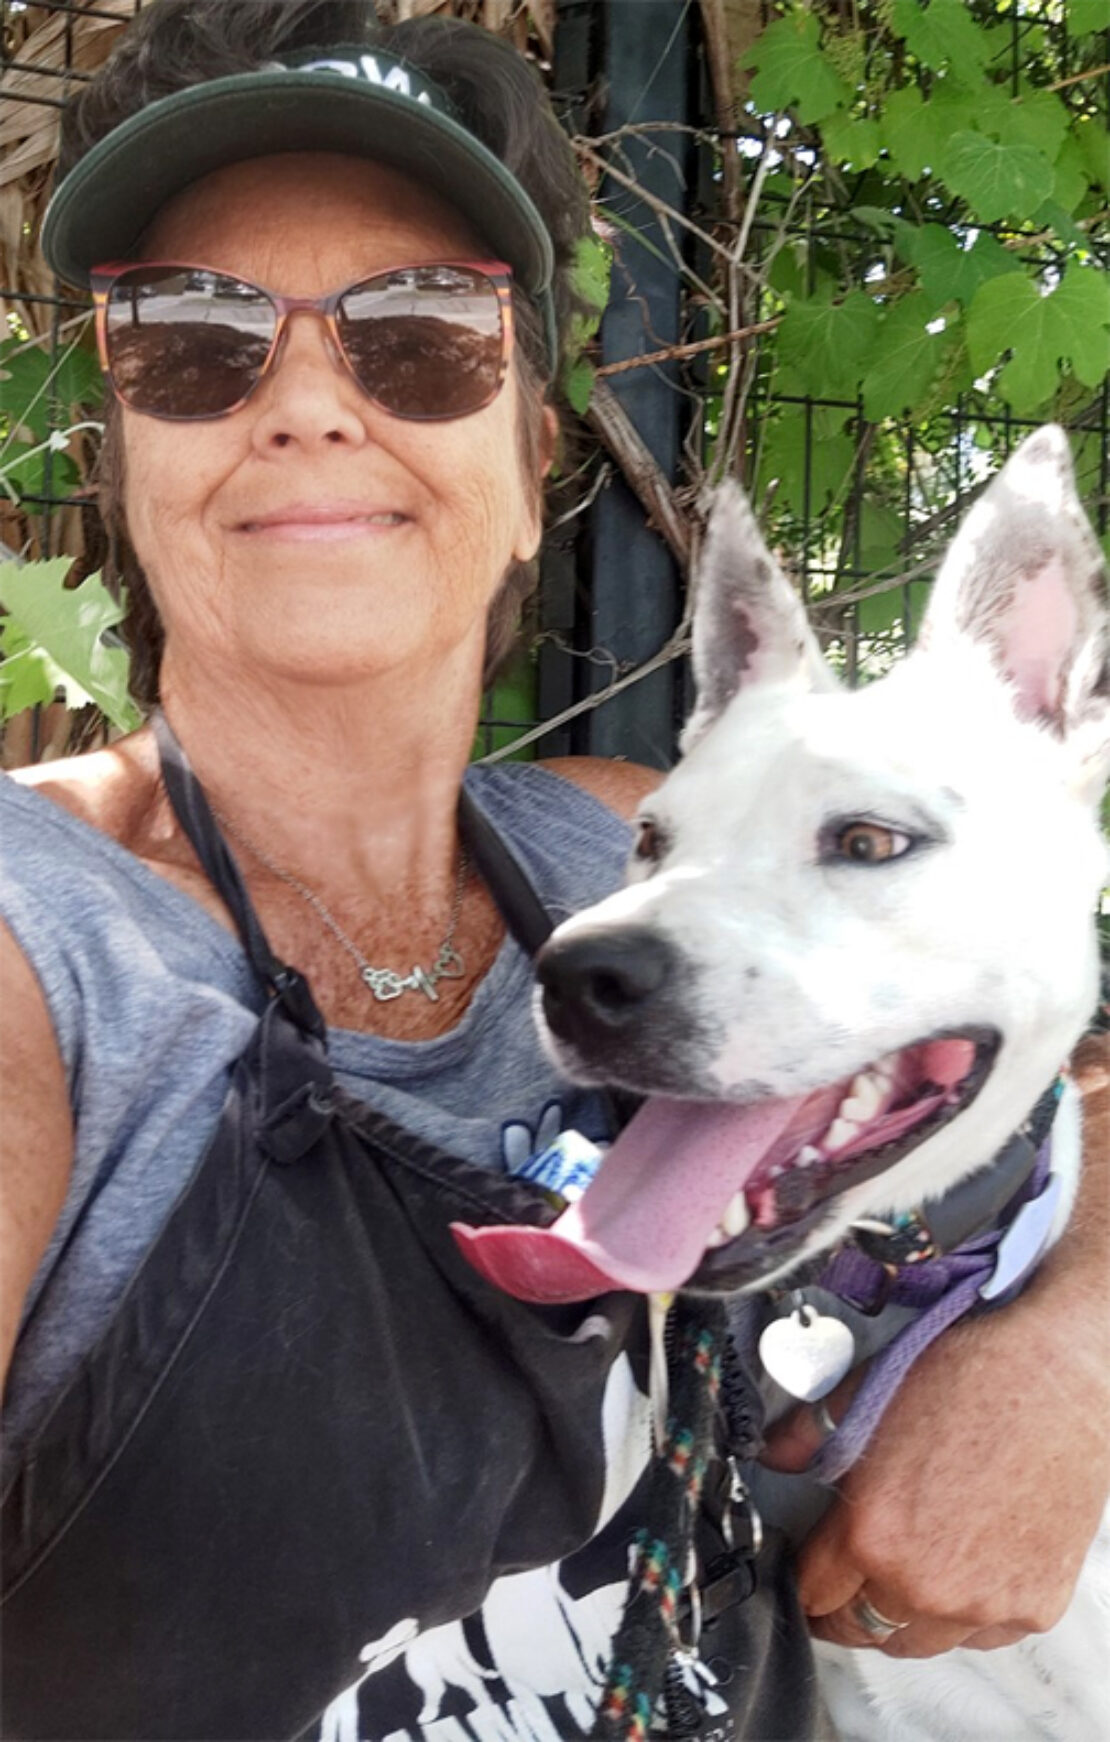 smirking woman in sunglasses and black cap and apron has arm around a white German shepherd mix. Photos are from chest up.